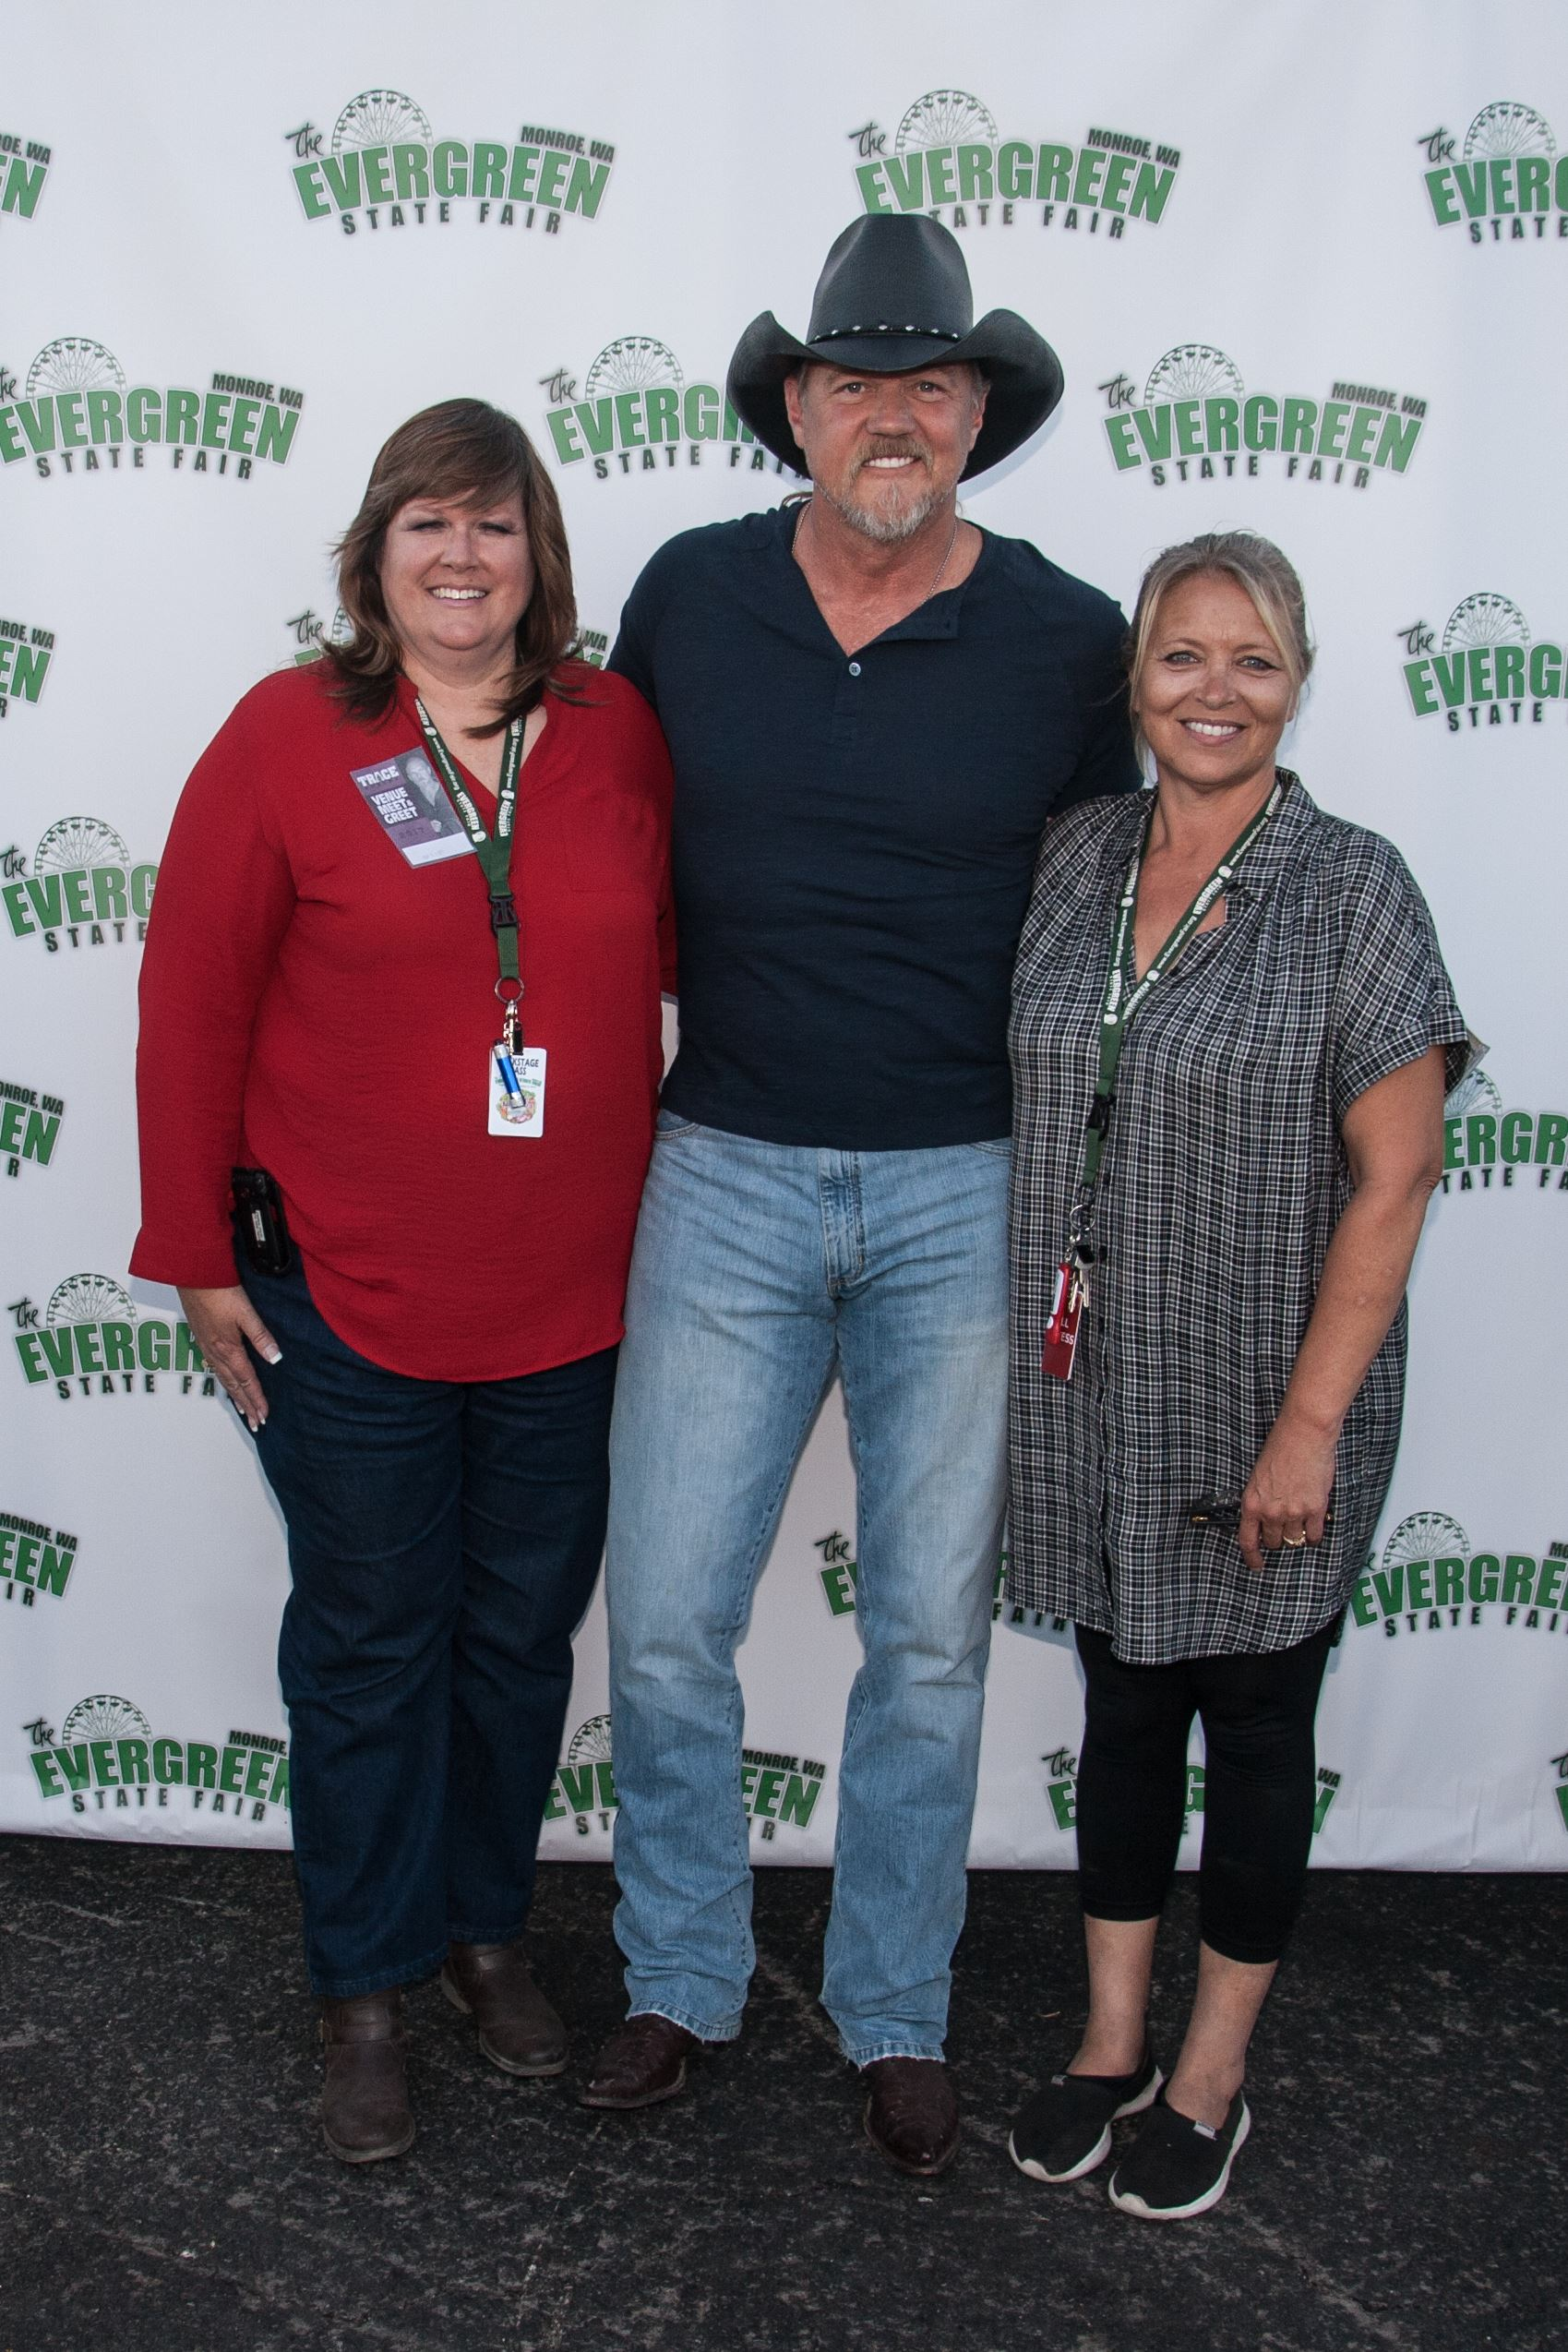 Evergreen state fairgrounds wa official website traceadkins78 kristyandbryce Choice Image